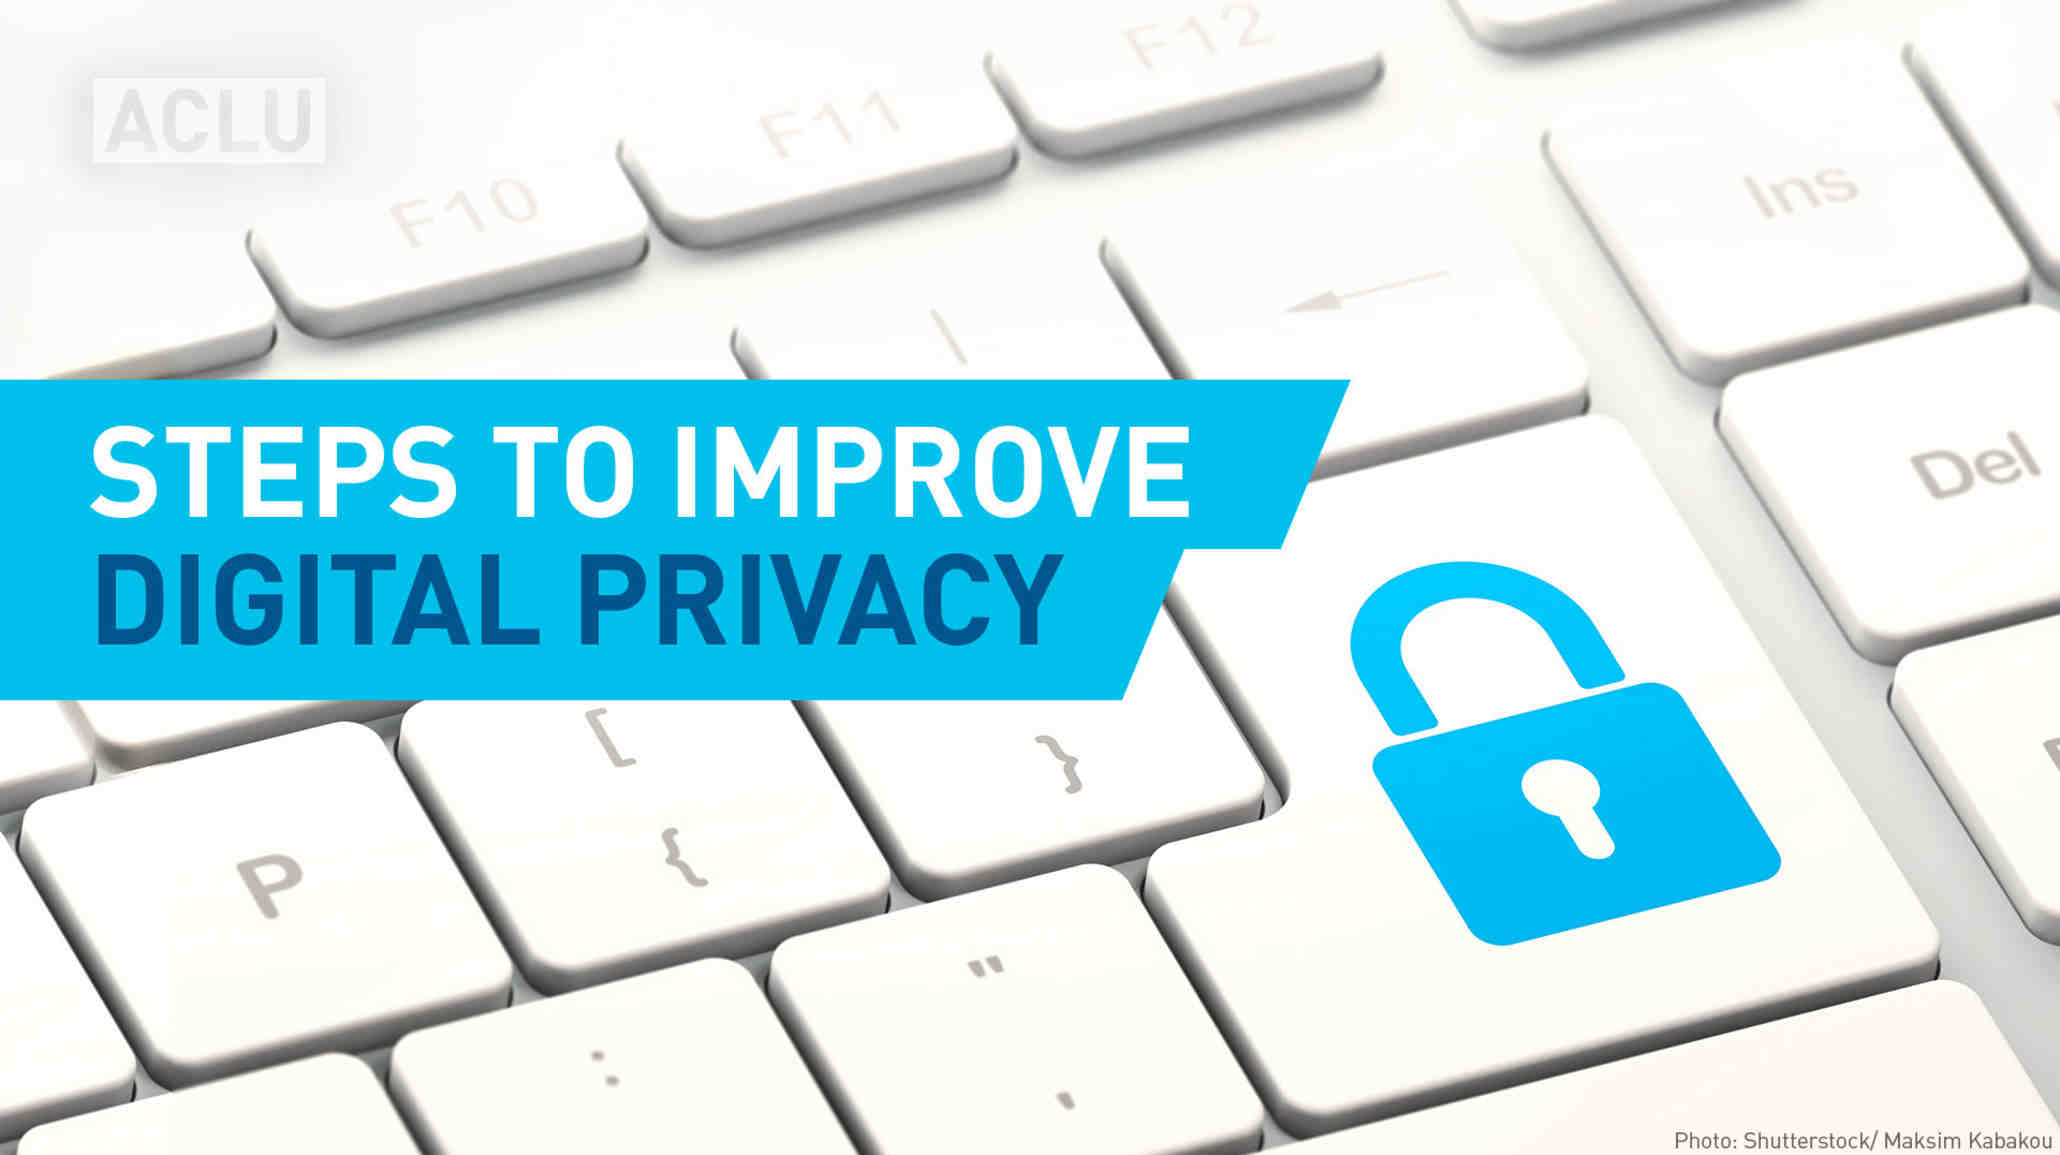 Steps to improve digital privacy